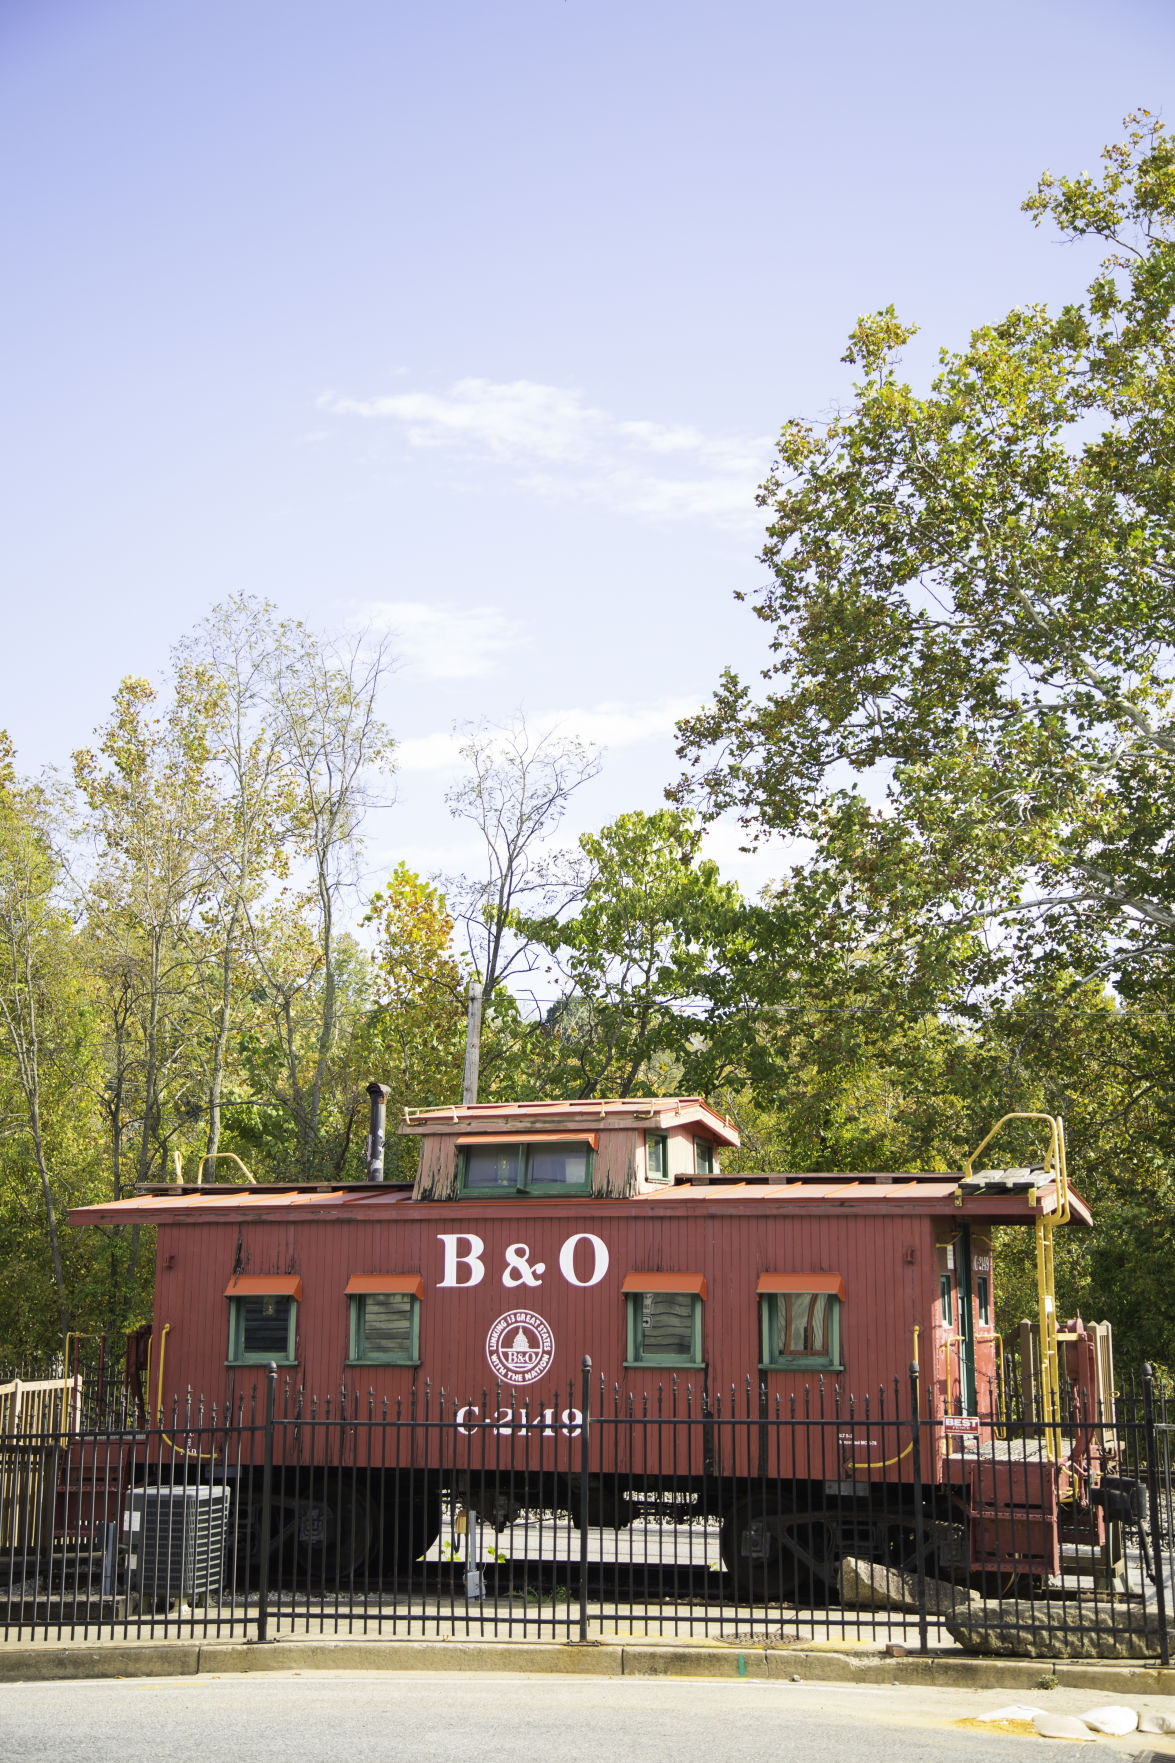 19-10 Howard BO Railroad Musuem CAboose.jpg